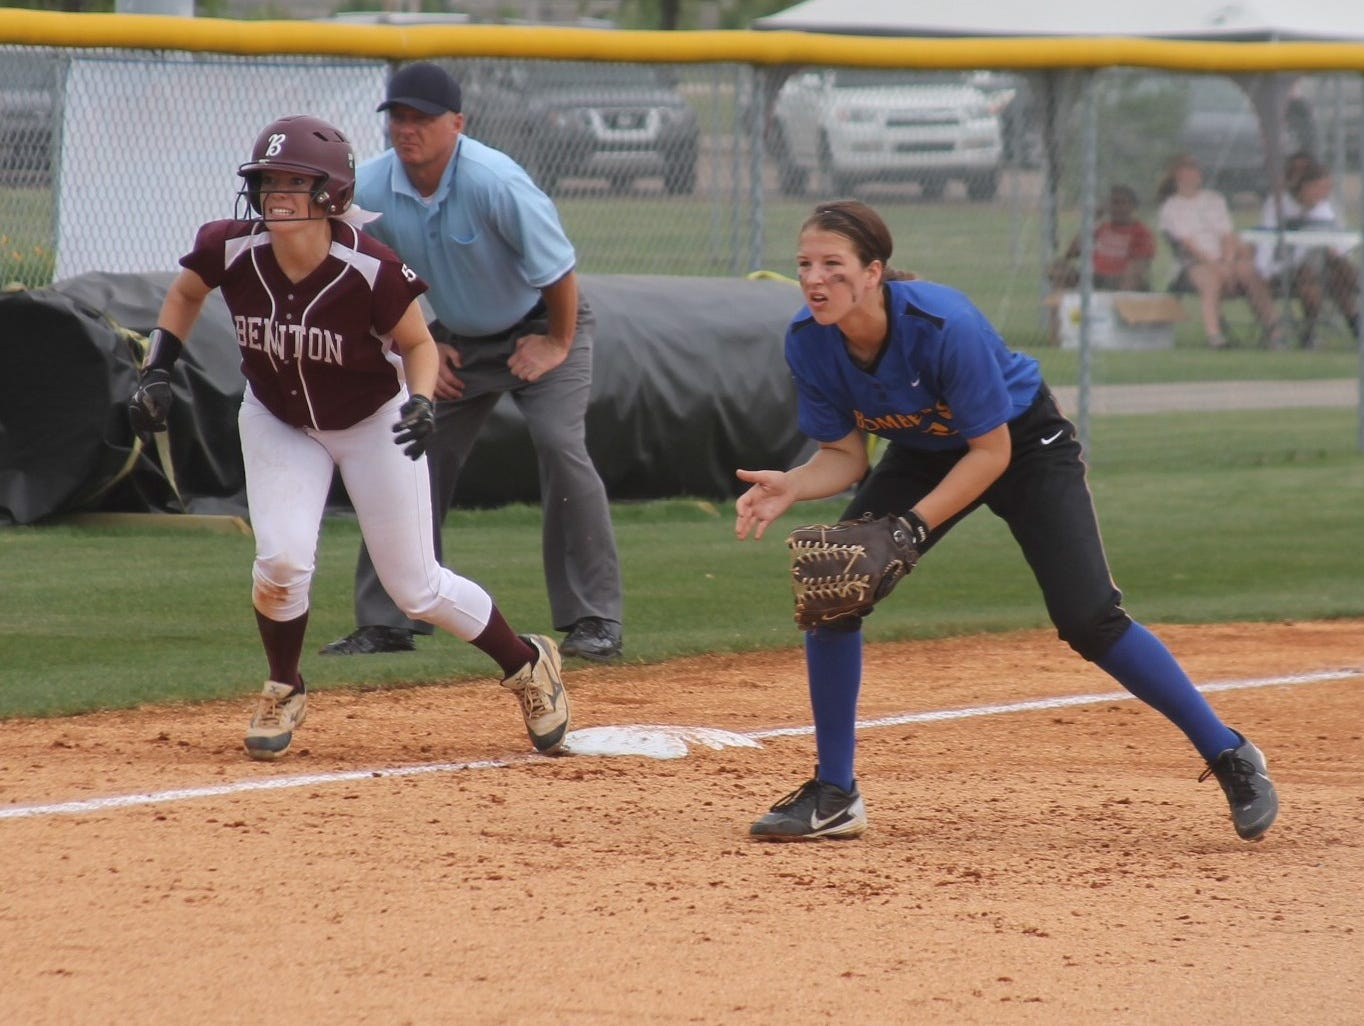 Mountain Home's Maly Tabor, right, gets ready to field the ball at third base as a Benton baserunner takes off during the Lady Bombers' 10-0 loss to the Lady Panthers in the quarterfinals of the Class 6A State Softball Tournament on Friday at Marion.